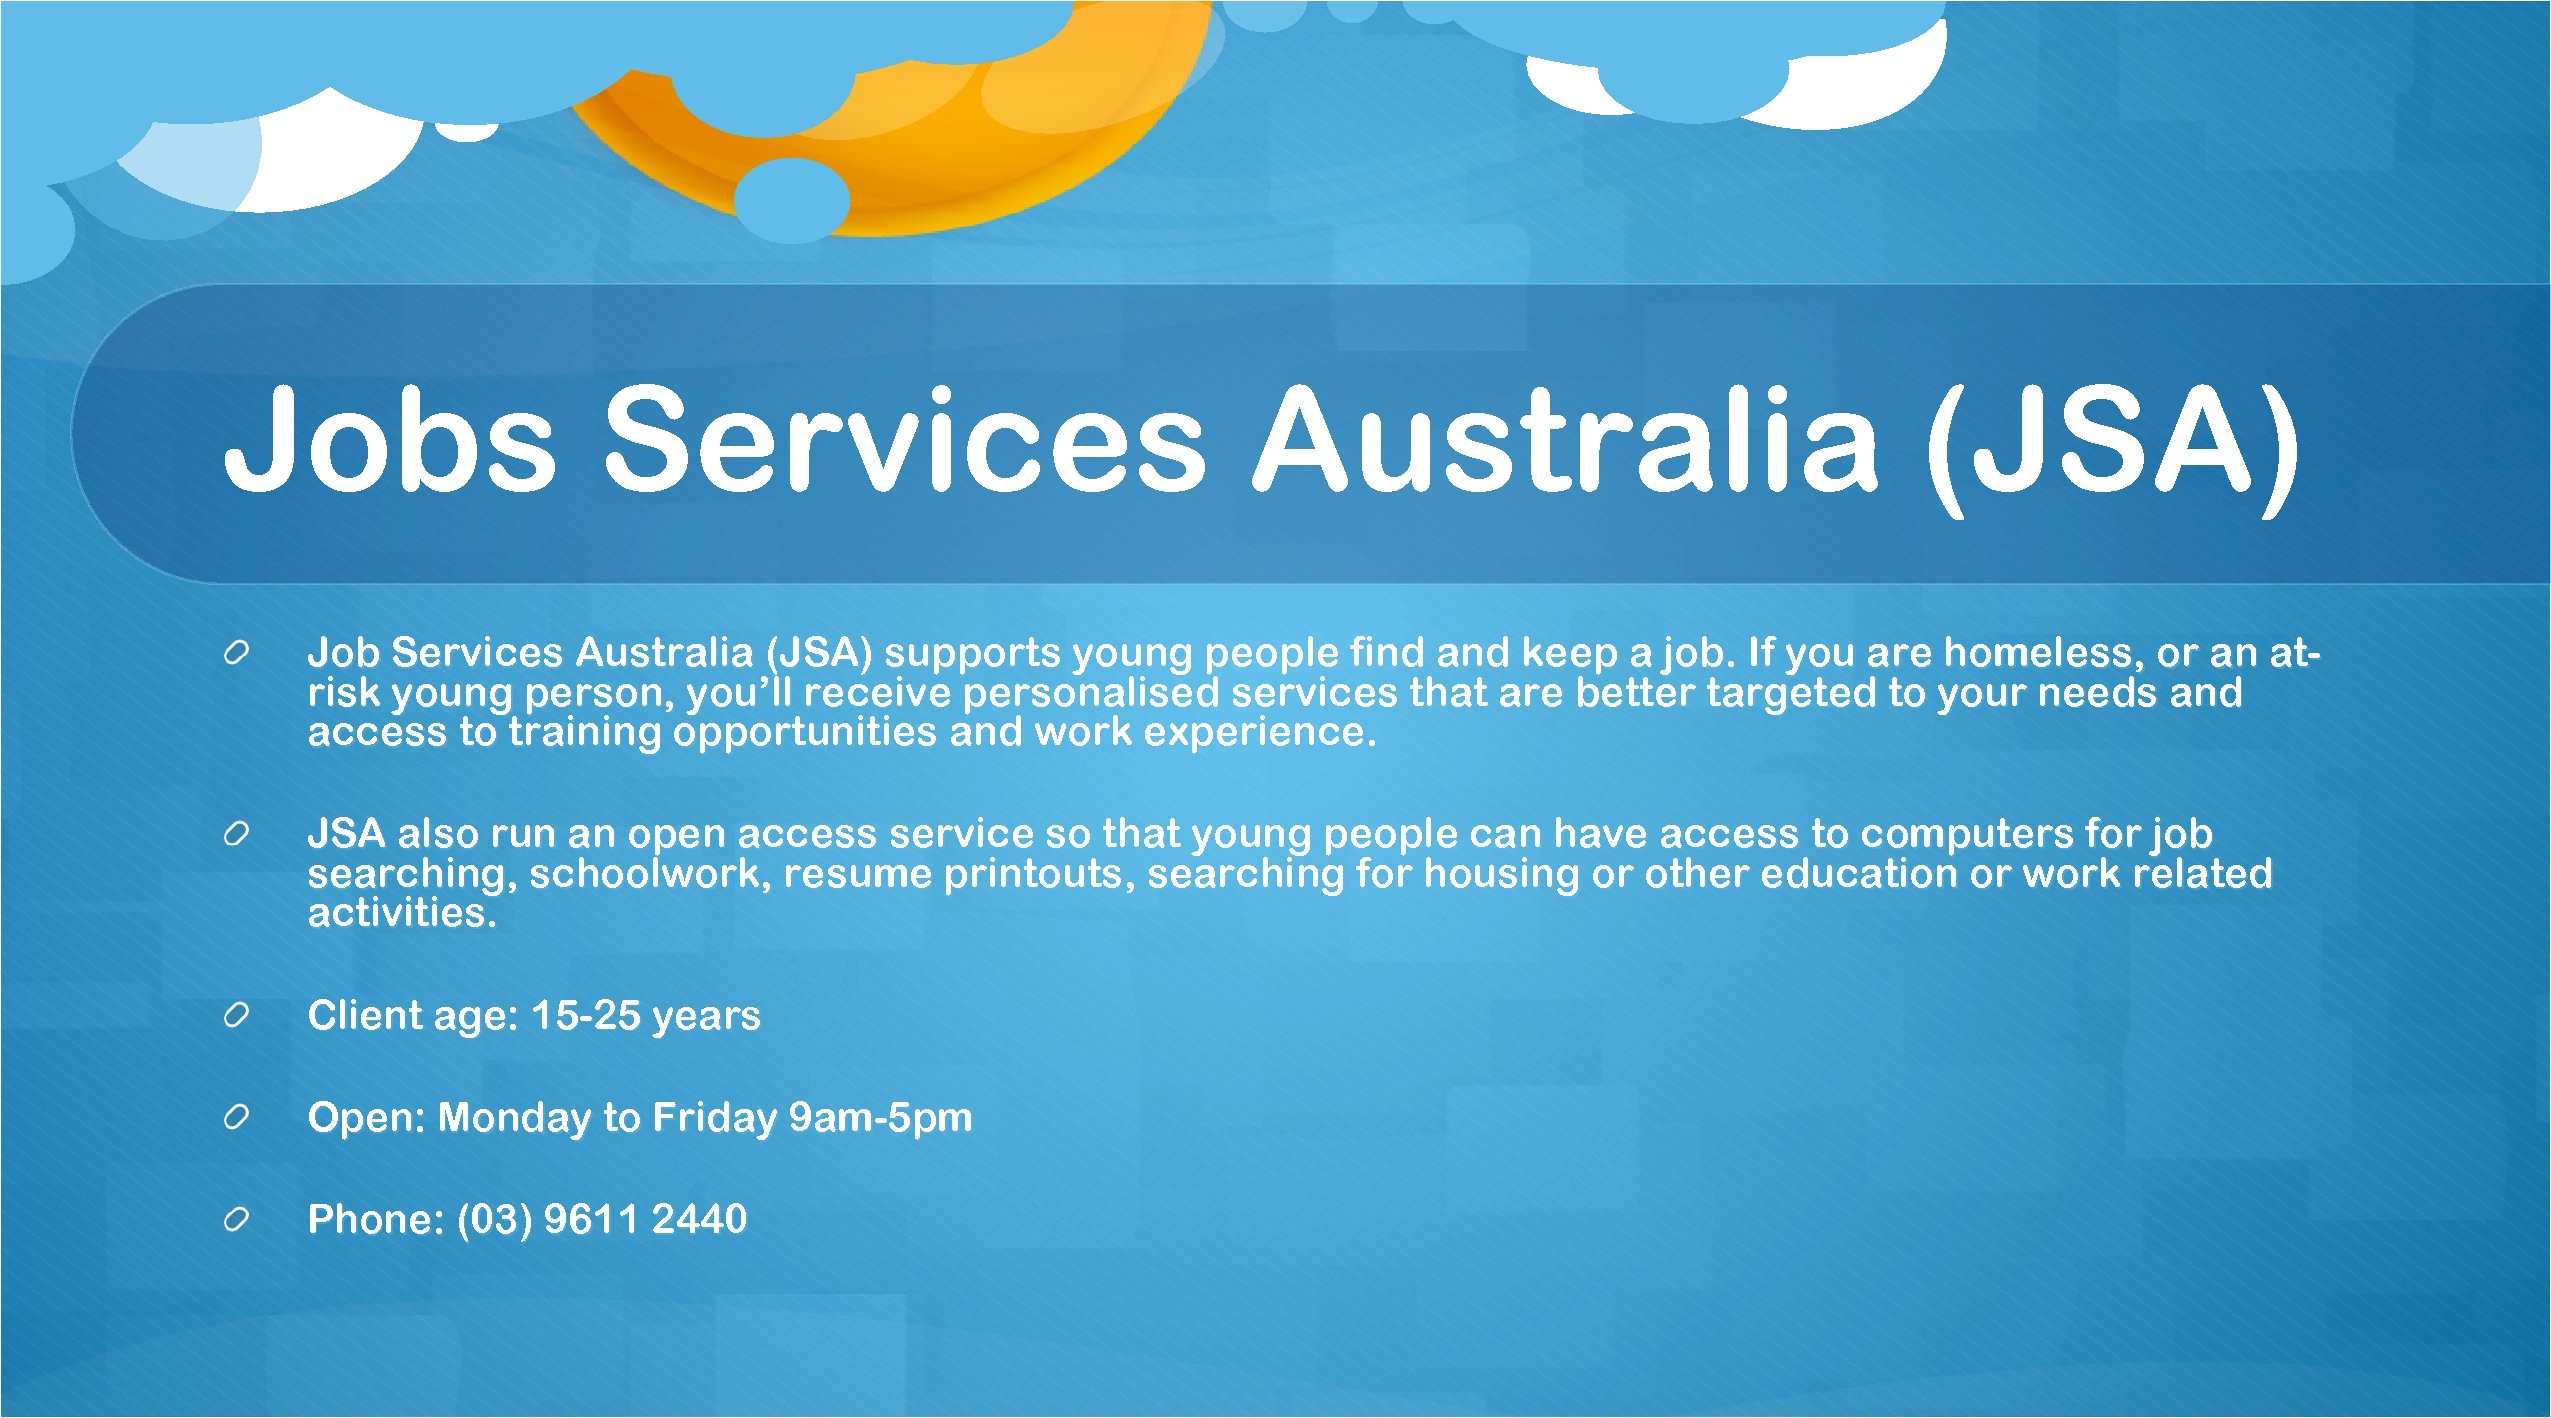 Jobs Services Australia (JSA) Job Services Australia (JSA) supports young people find and keep